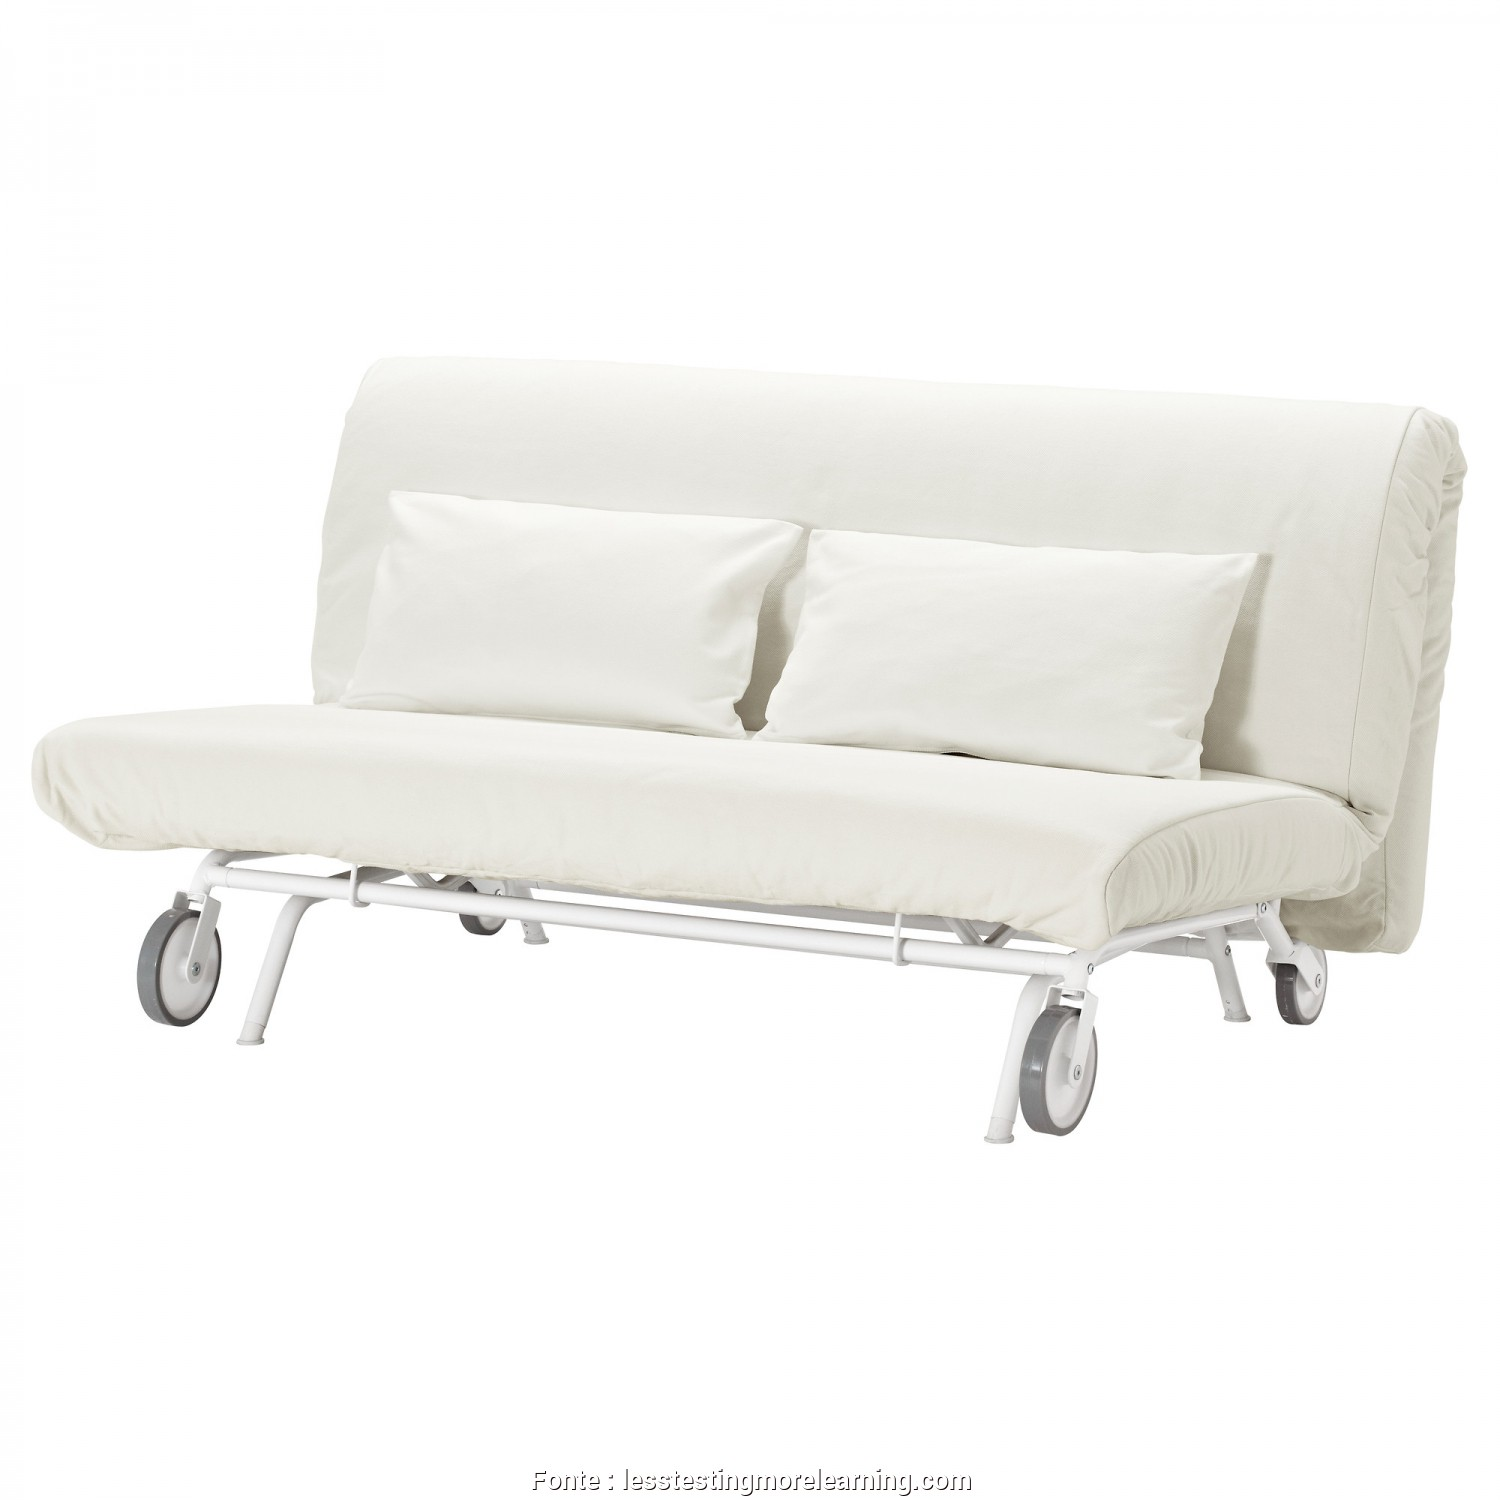 Leather Futon Ikea, Bella Furniture: Sleeper Chair Ikea With Different Styles, Fabrics To